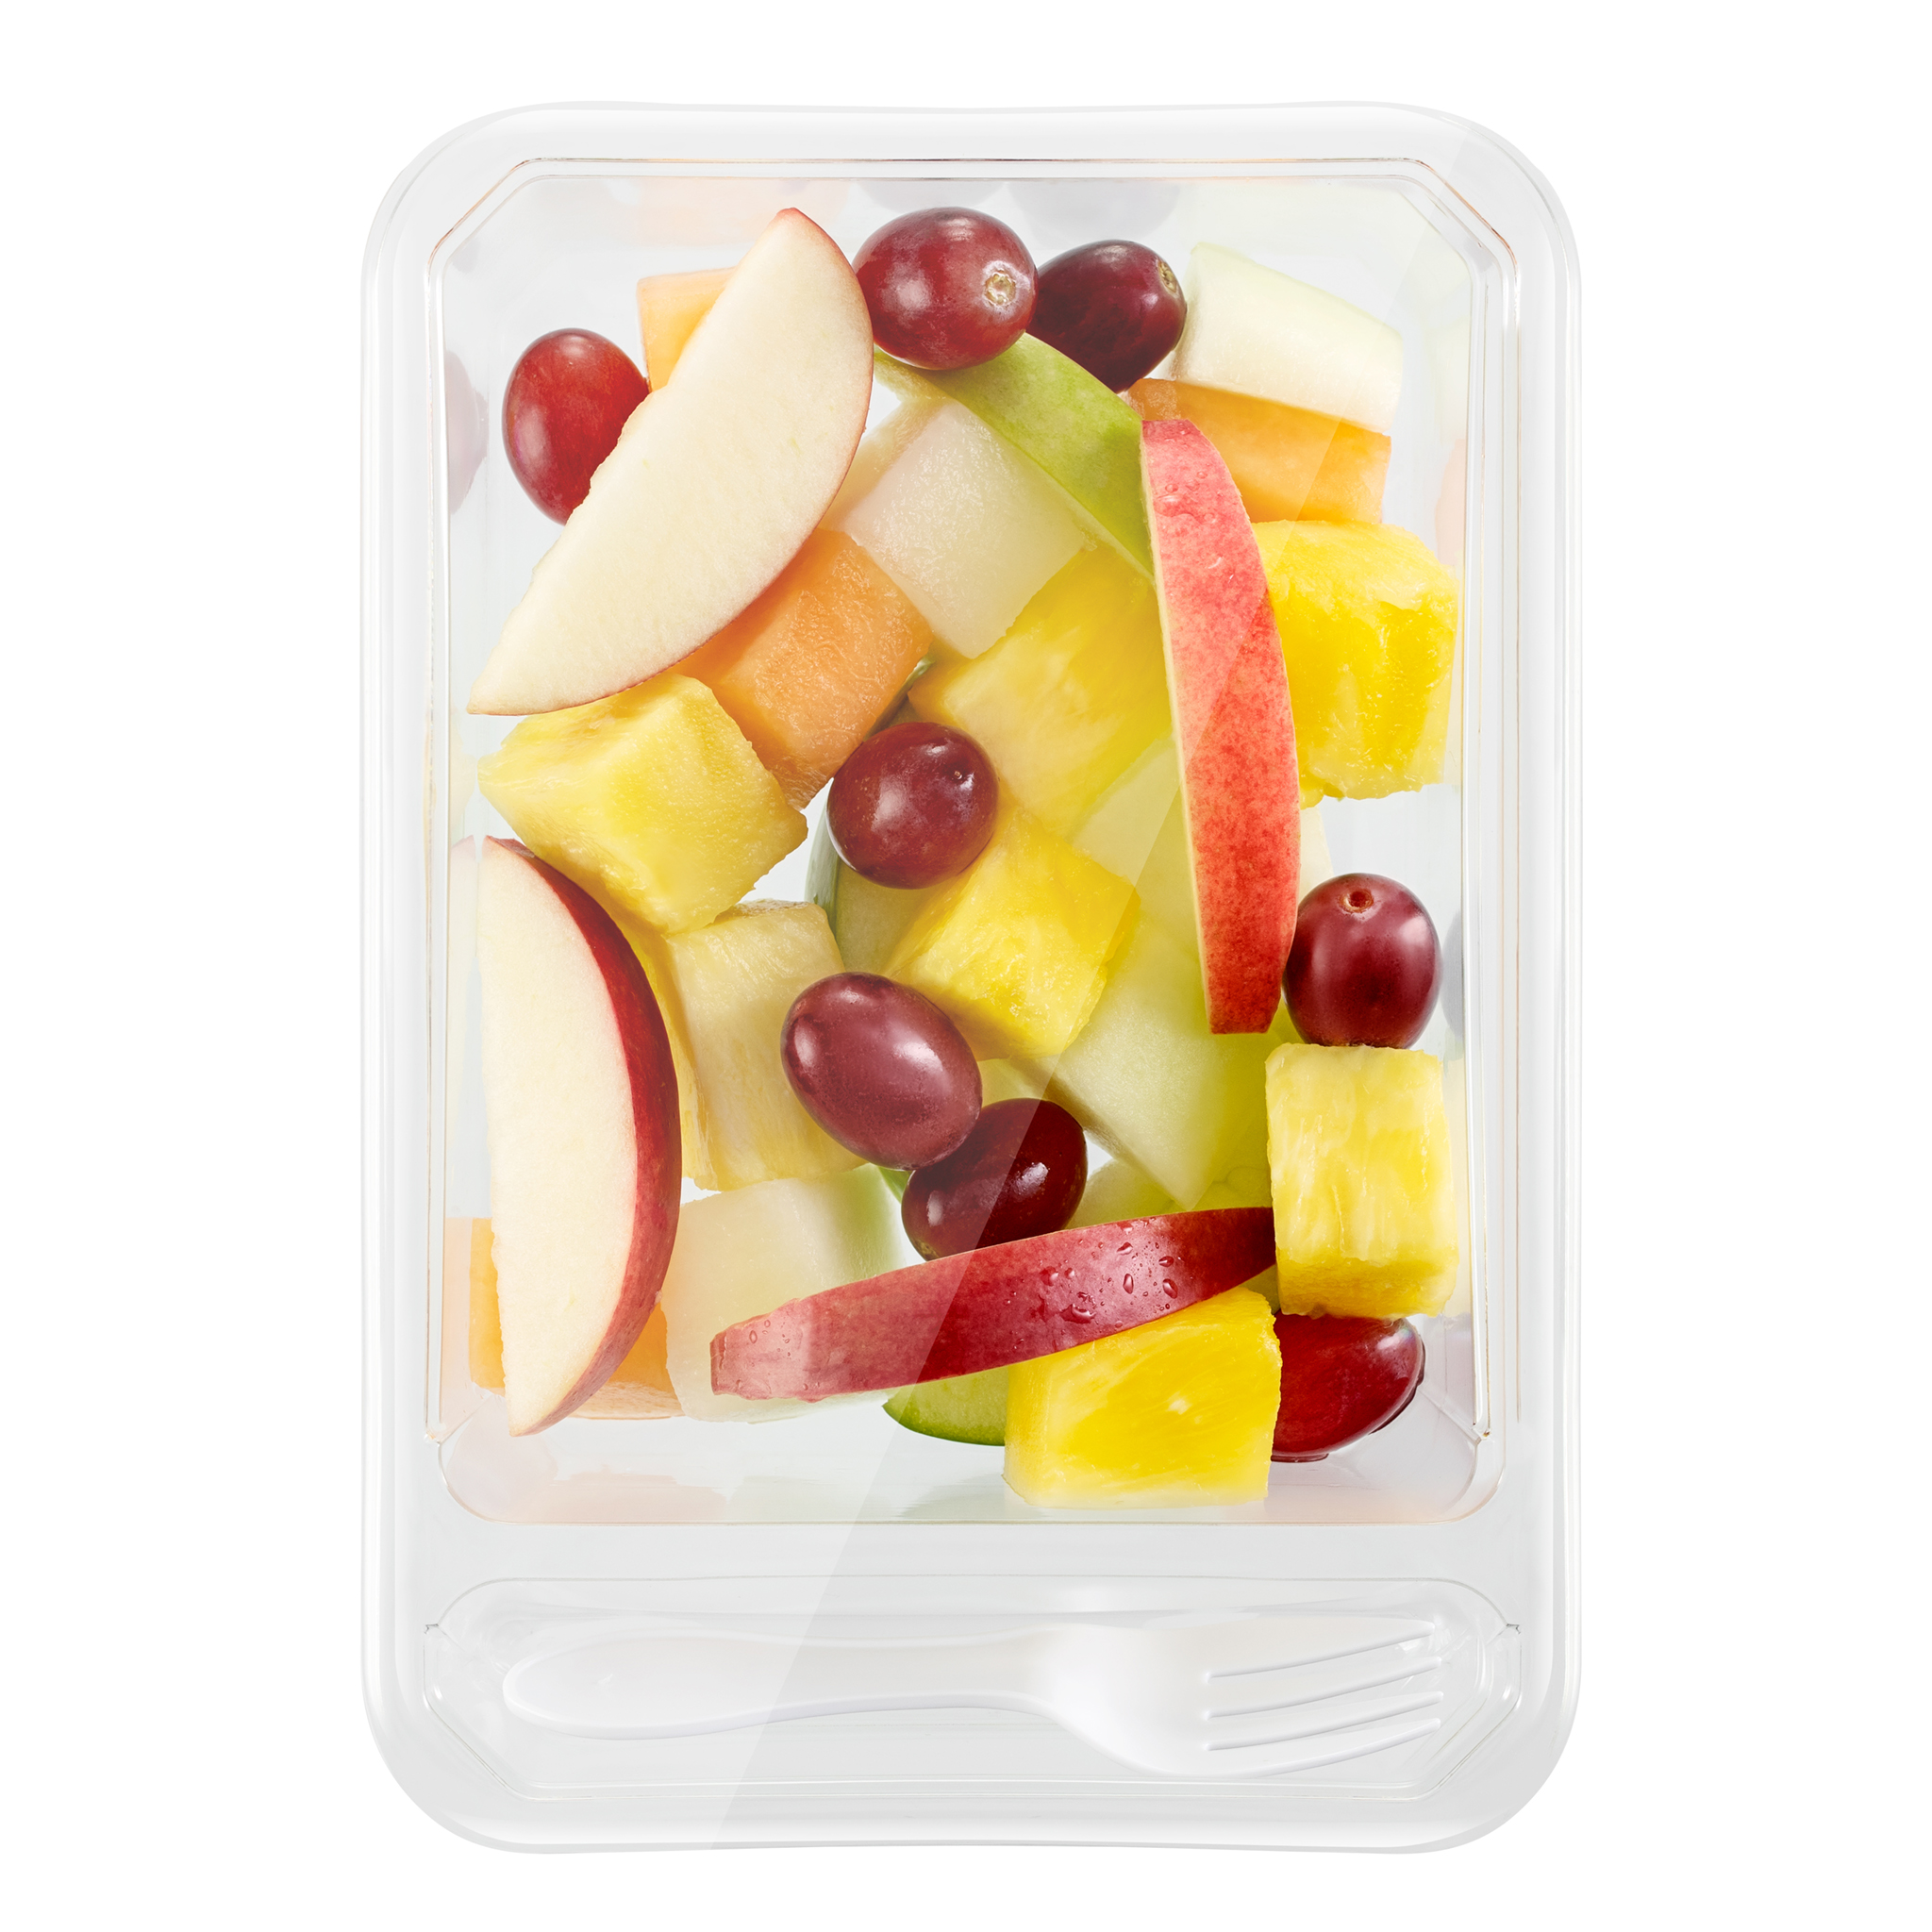 lettstudio_packshot_white_background_fruits3.jpg